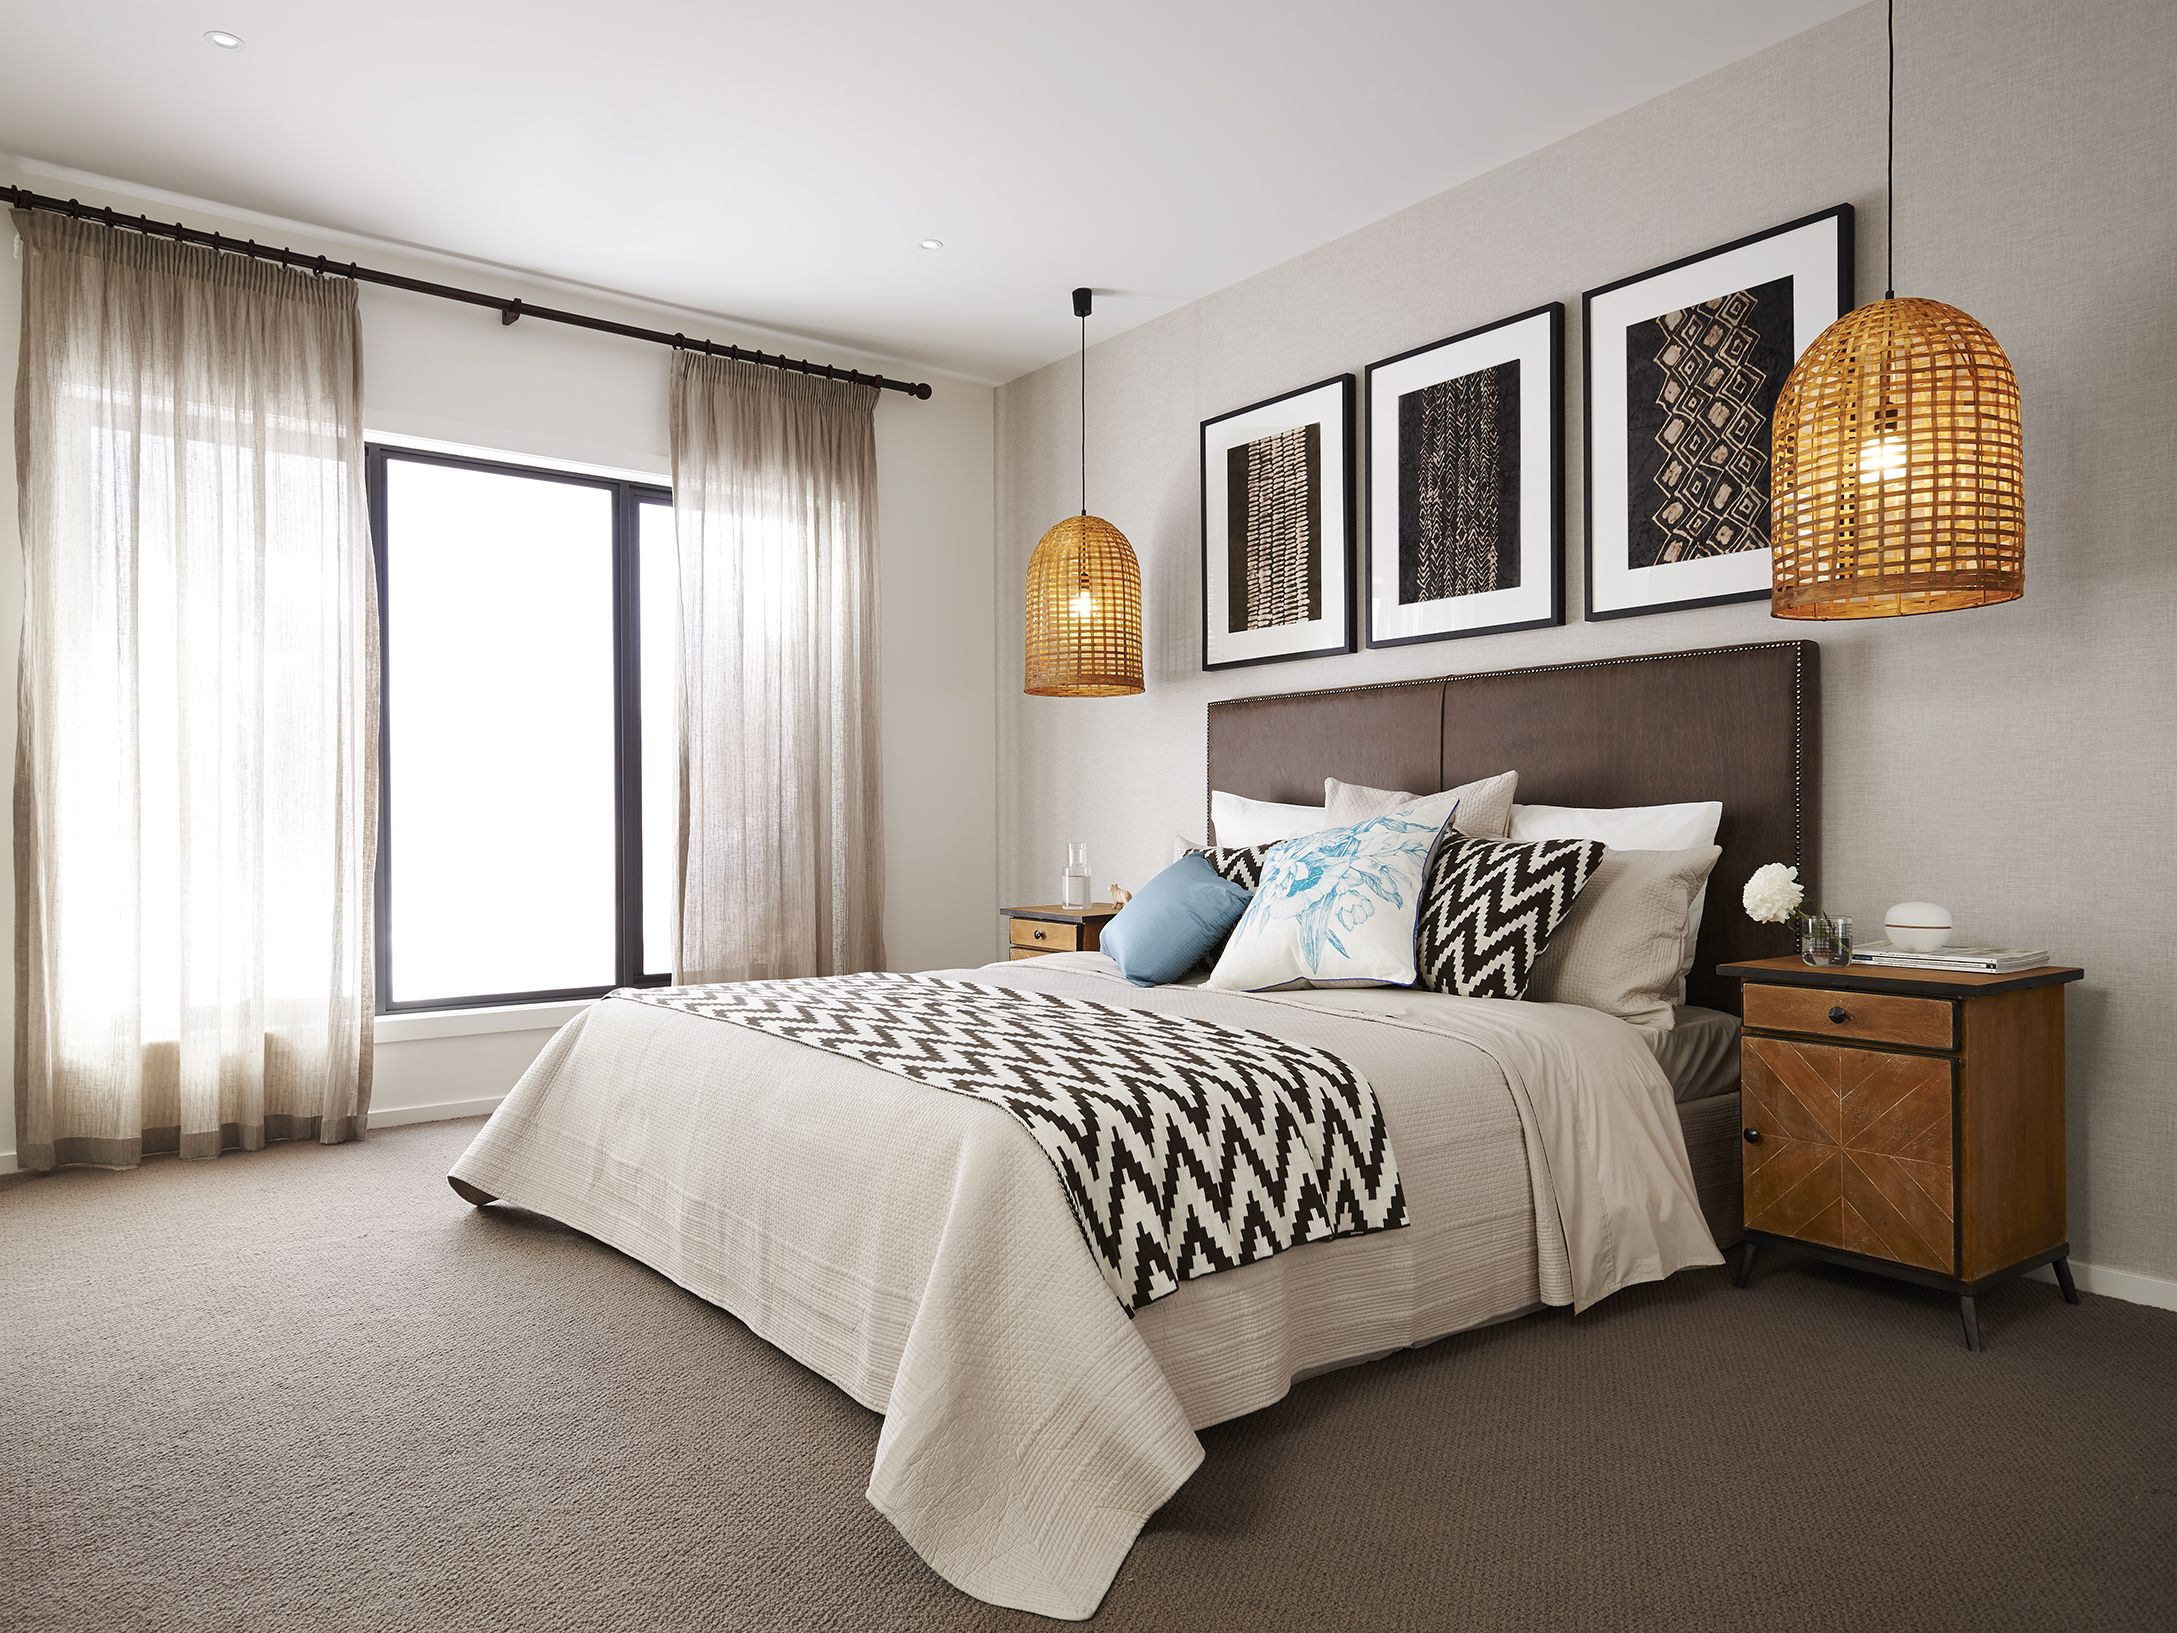 We Love The Hanging Pendant Lights Featured In The Seville28 Master Bedroom Master Bedroom Lighting Bedroom Light Fixtures Modern Bedroom Lighting